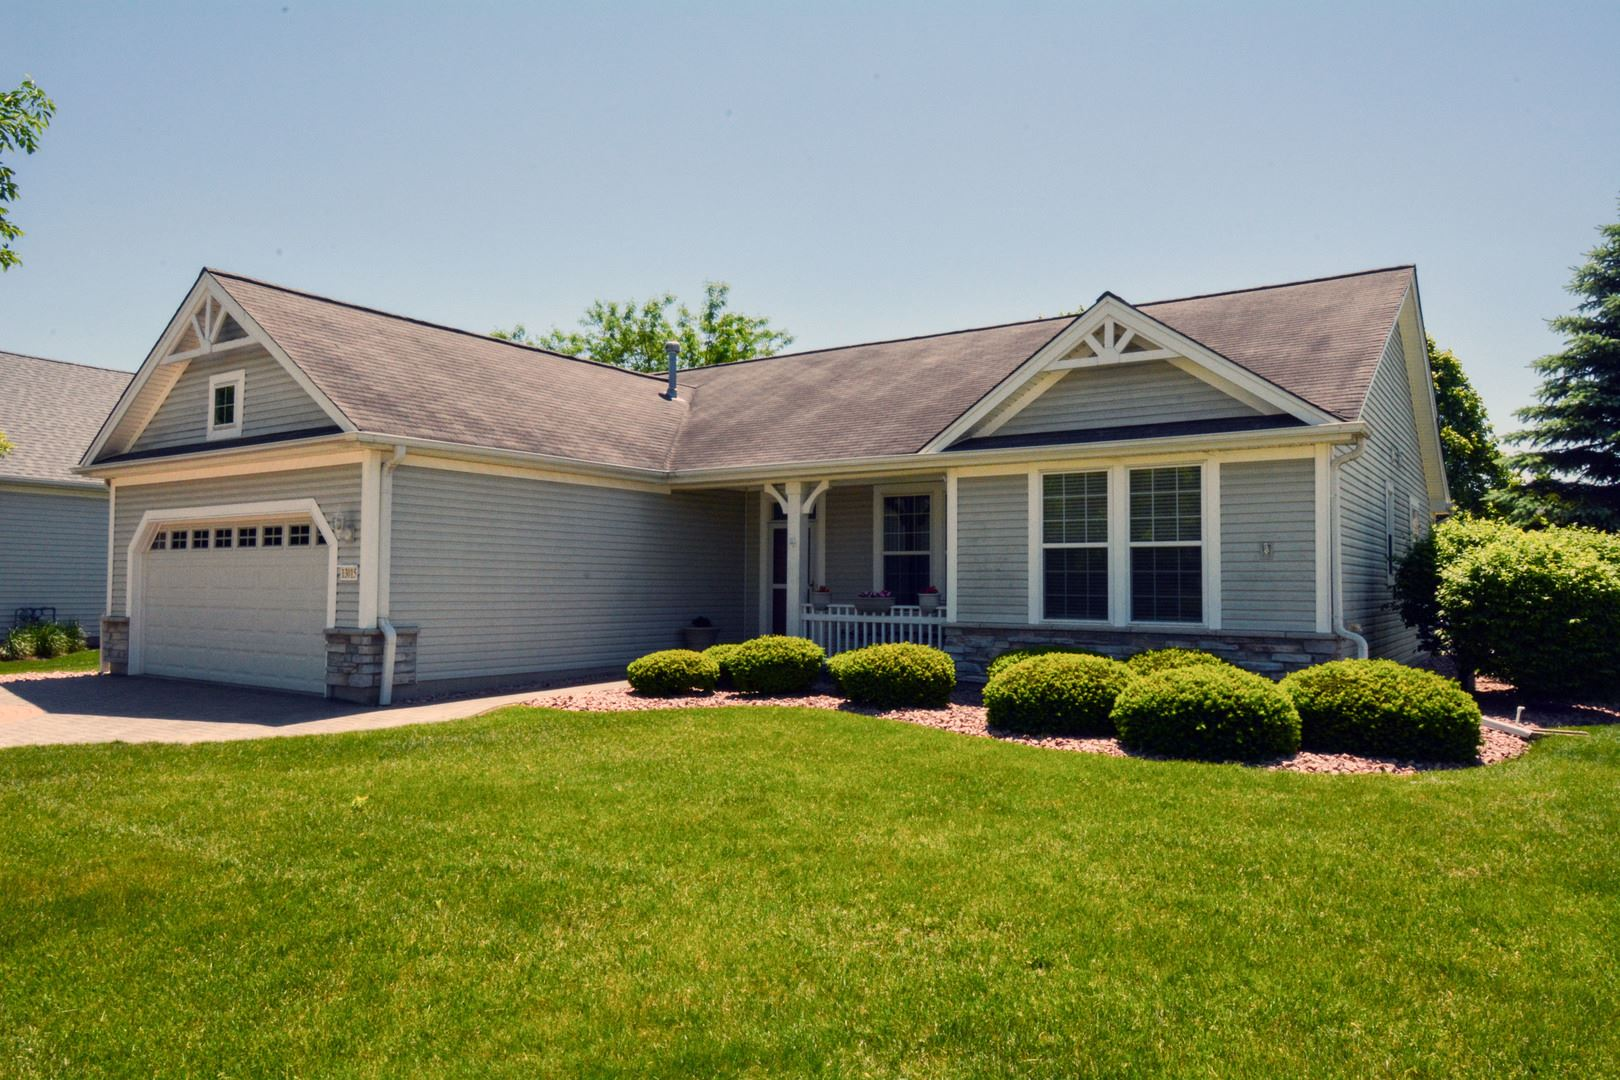 13015 TALL GRASS Trail, Huntley, IL 60142 - #: 10738729